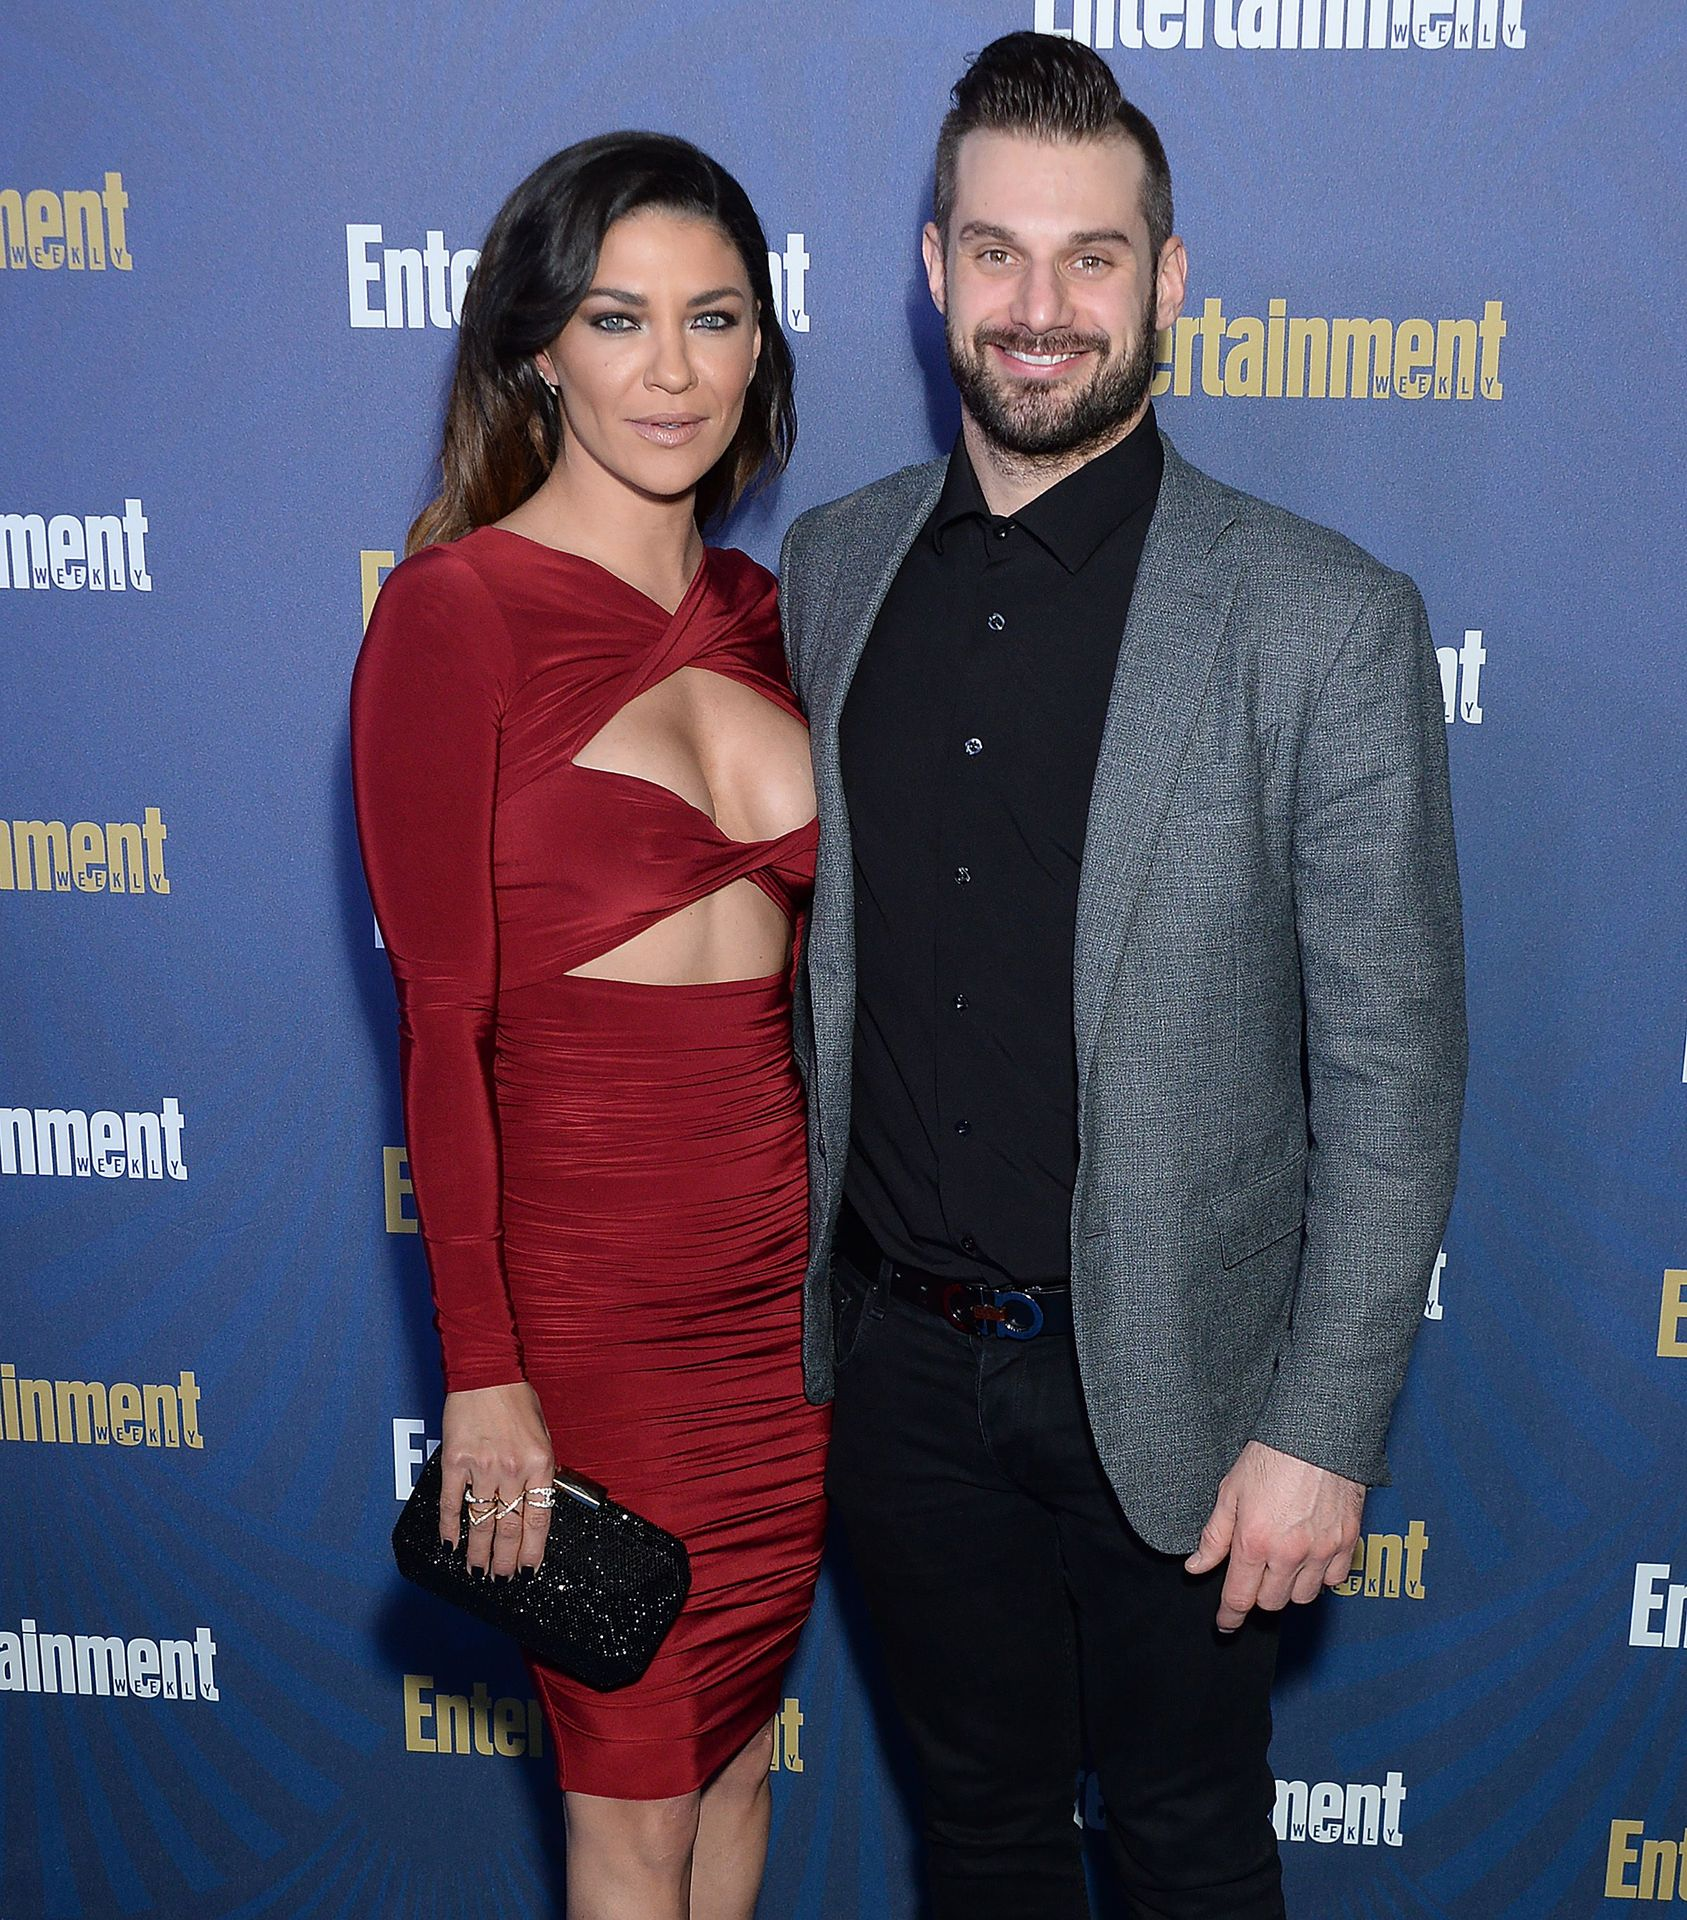 Jessica Szohr Shows Her Cleavage At The Entertainment Weekly Pre Sag Awards Celebration 0002